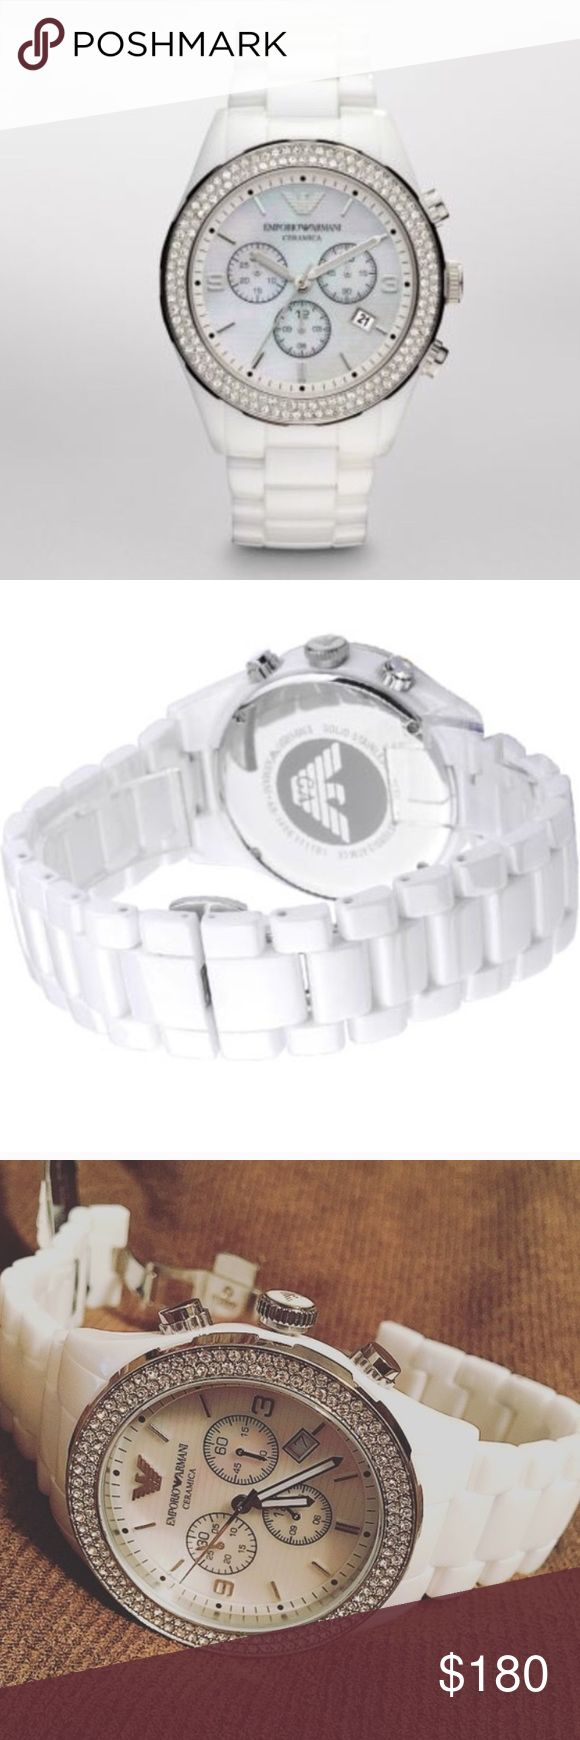 "*SALE* White Ceramic Emporio Armani Watch Women's white ceramic Emporio Armani watch. Has two rows of Swarovski crystals around the bezel, mother of pearl face, and chronograph feature. Watch is NEW with defects. Never warn, new with tags! However, the chronograph (stopwatch function) resets to the ""10"" hand instead of ""12"" hand. Battery works, everything is in excellent condition! Original AR box not included. Authentic. No trades! Emporio Armani Accessories Watches"